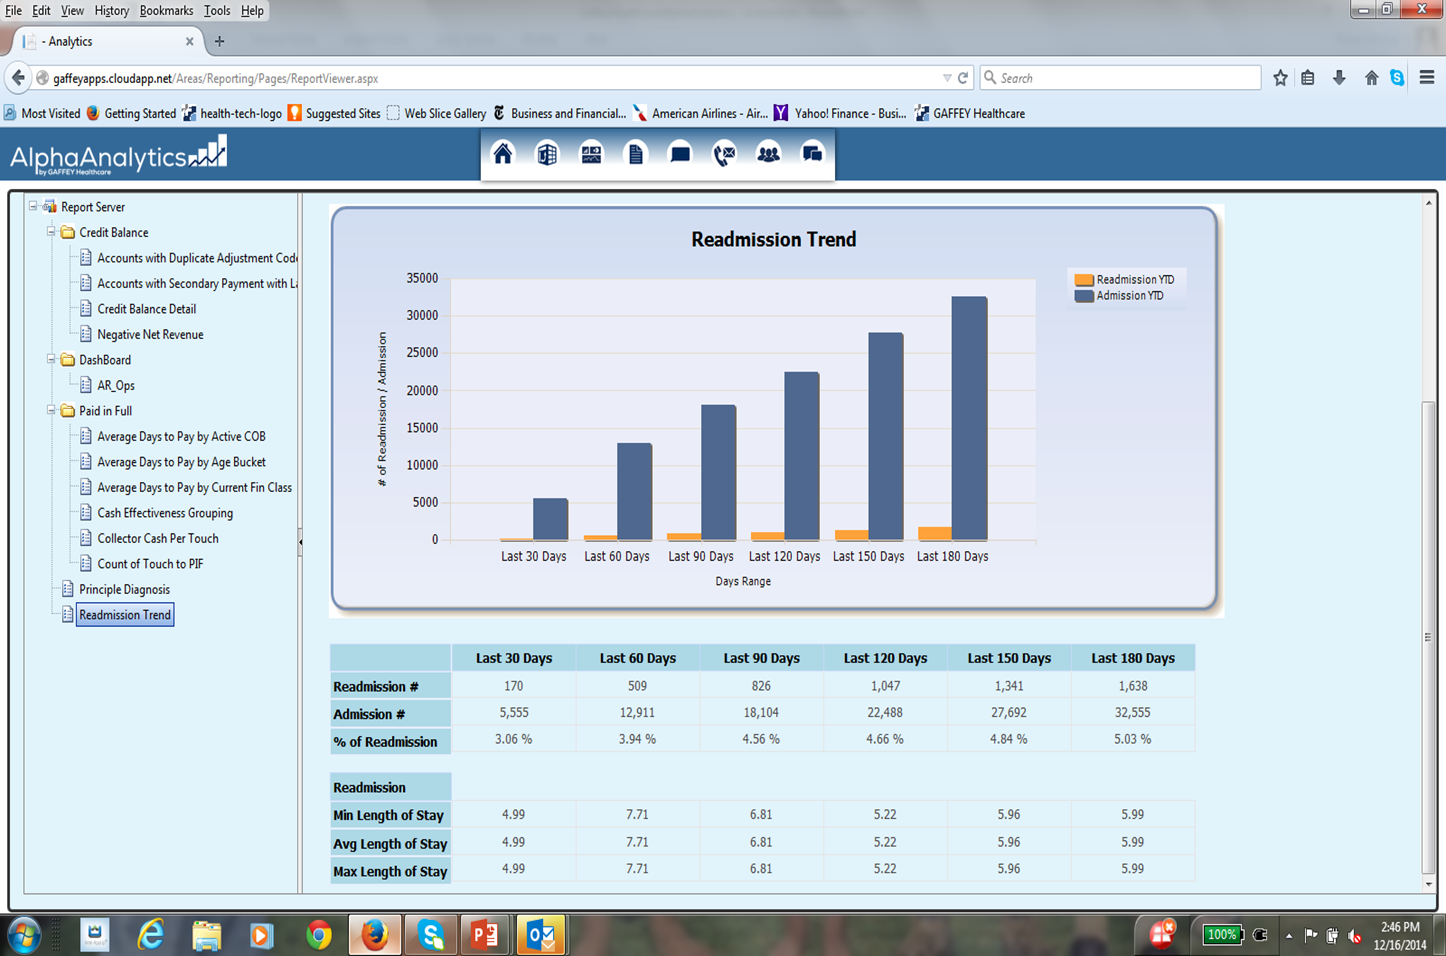 information. You can build queries, trend data over time and build reports including dashboards.